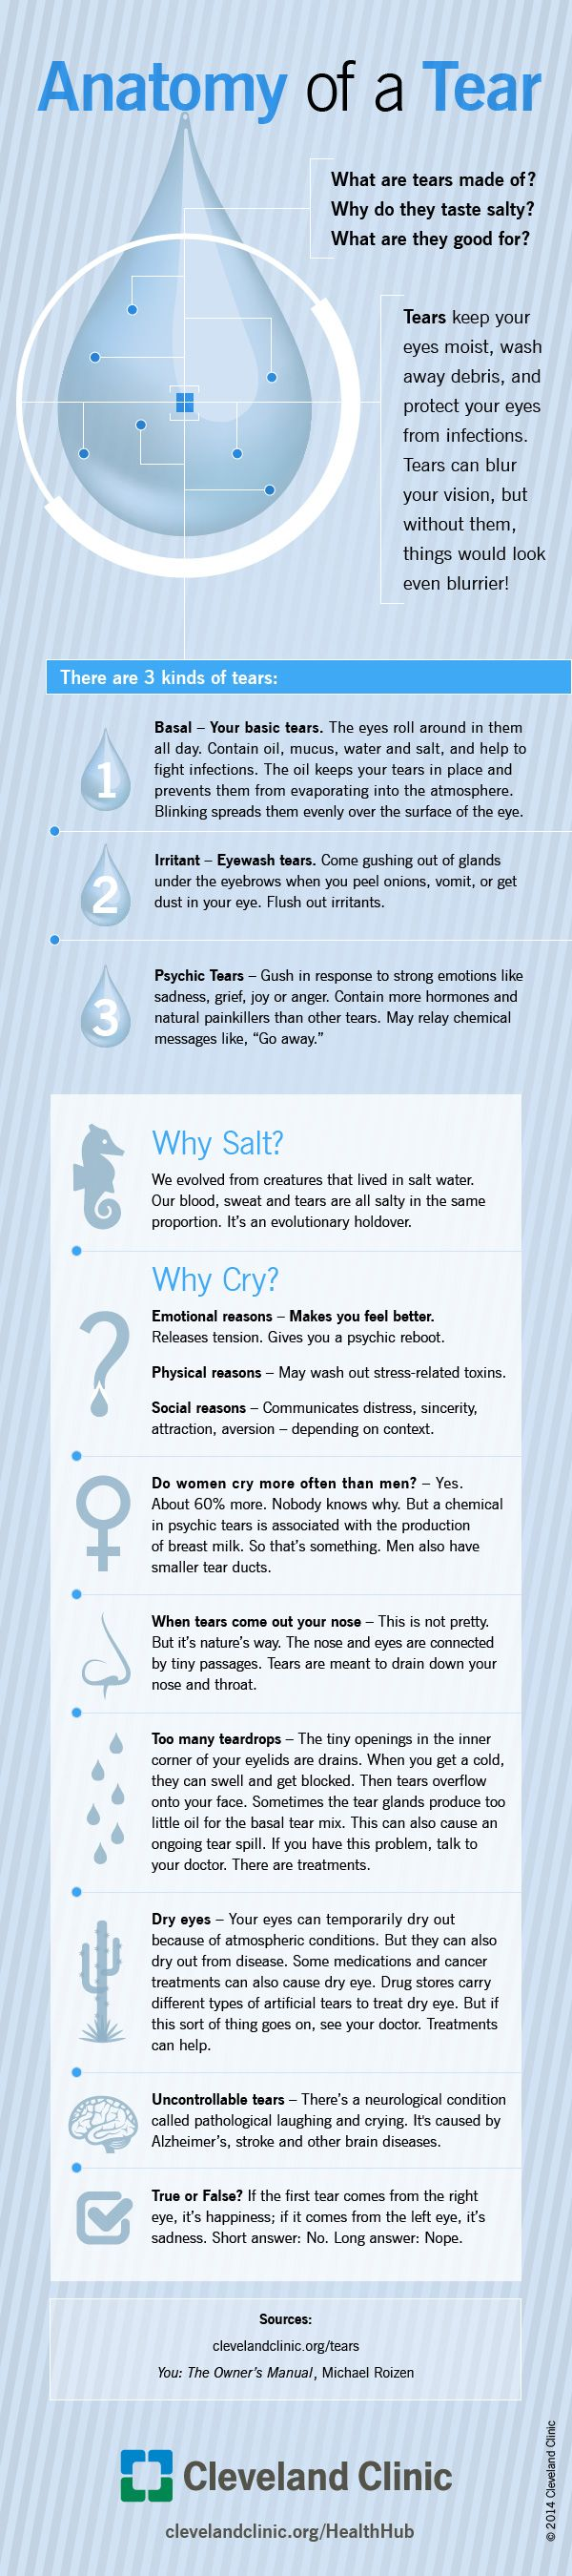 Everything you need to know about tears. What are #tears made of? Why are they salty? Find out. #cry #eyes